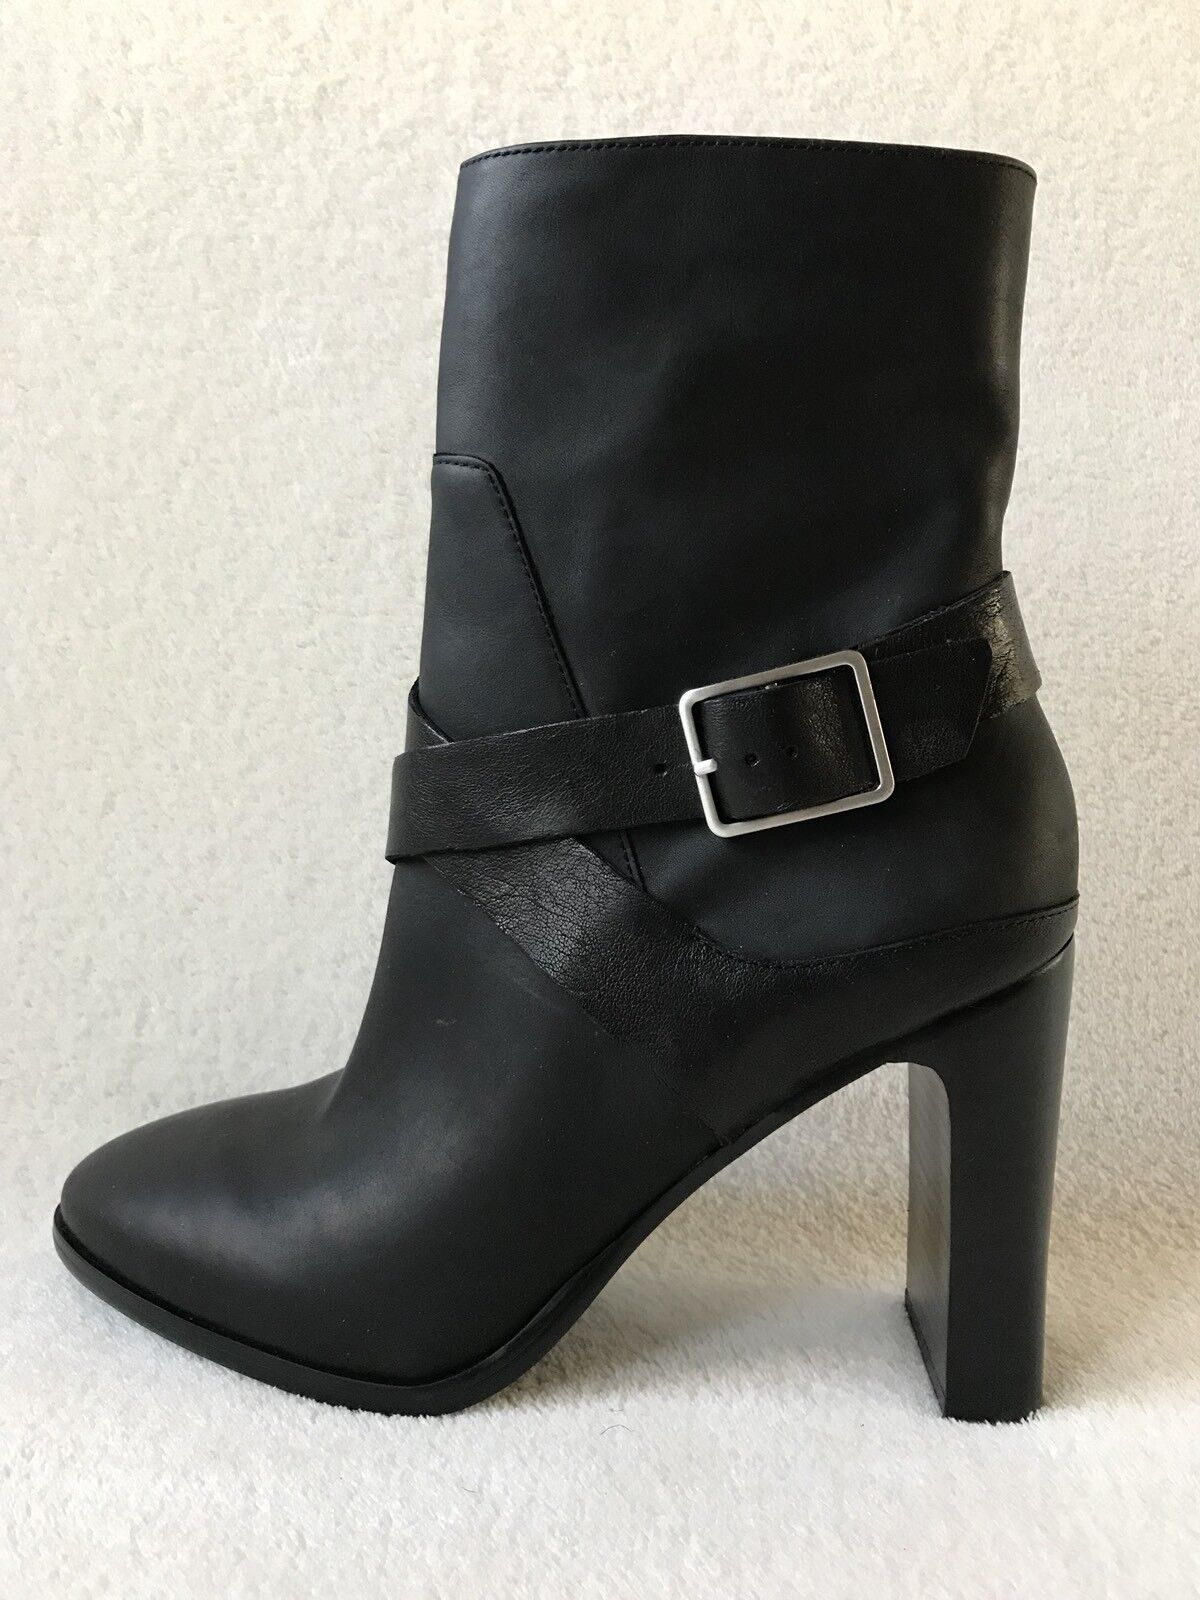 Aldo Black Leather Mid Shaft Buckle Strap Heel Booties Boots Womens 10 *New*